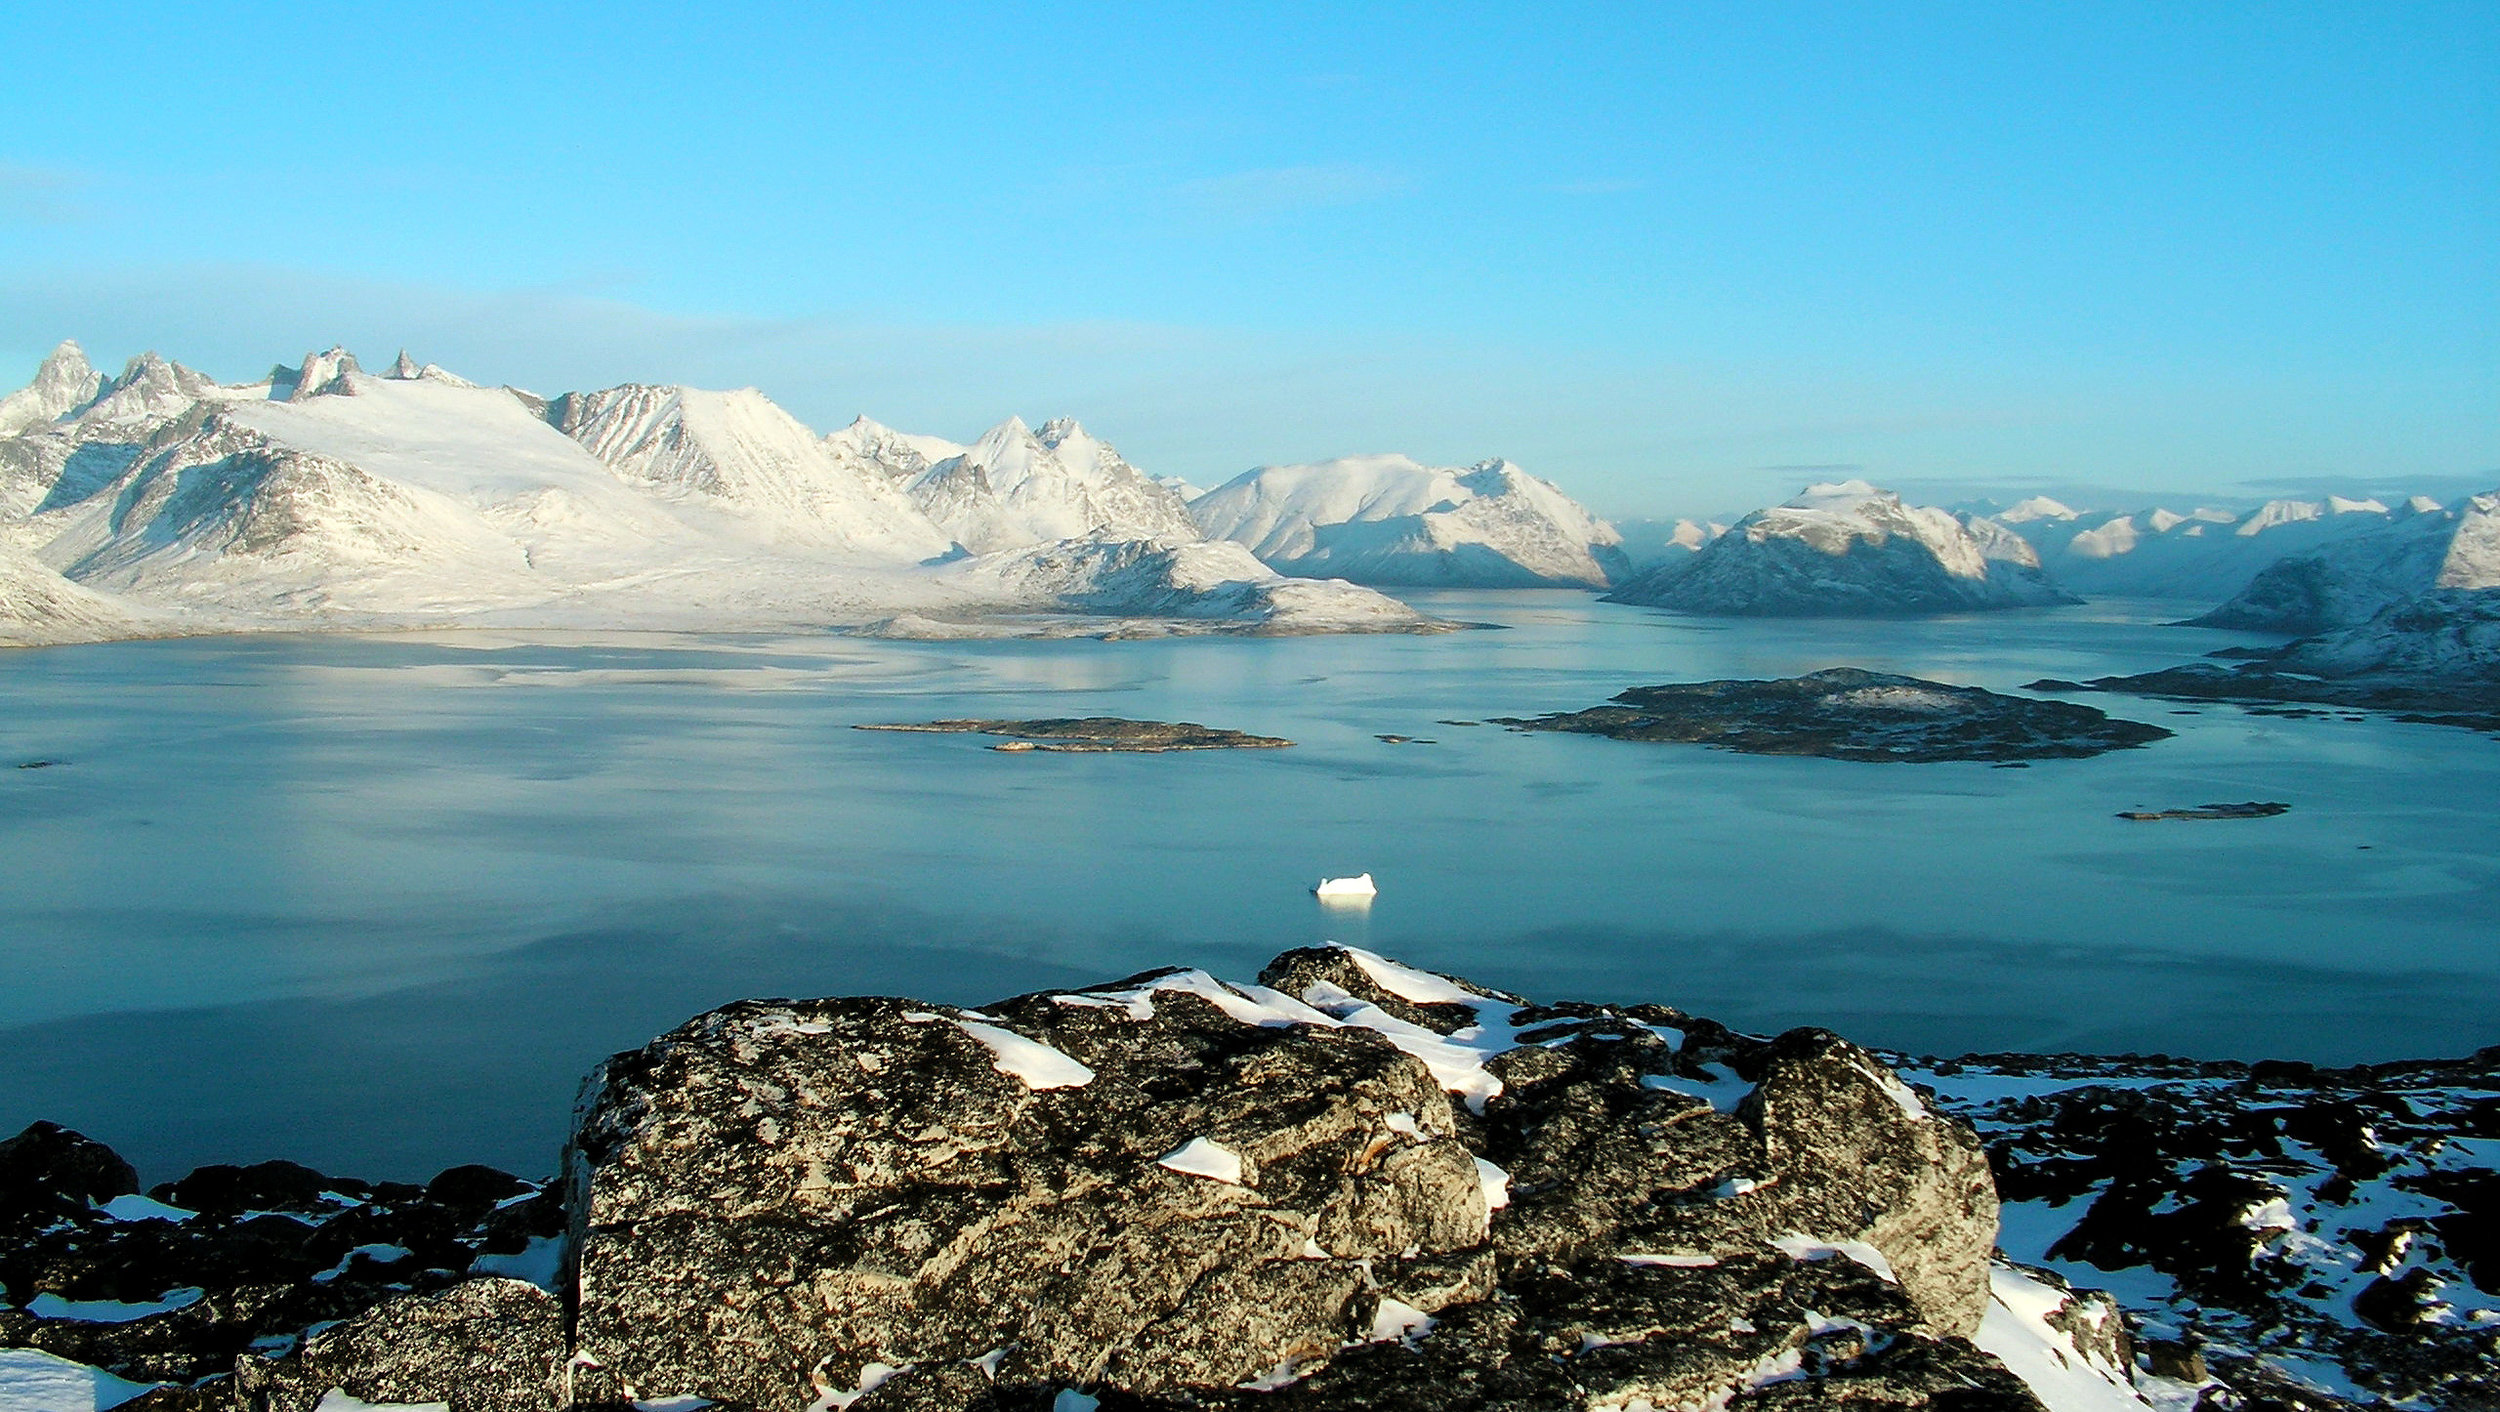 Contrary to popular belief, Greenland is likely full of precious natural resources, leading the United States to their inquiry.  Photo by MagicAardvark from Flickr Creative Commons